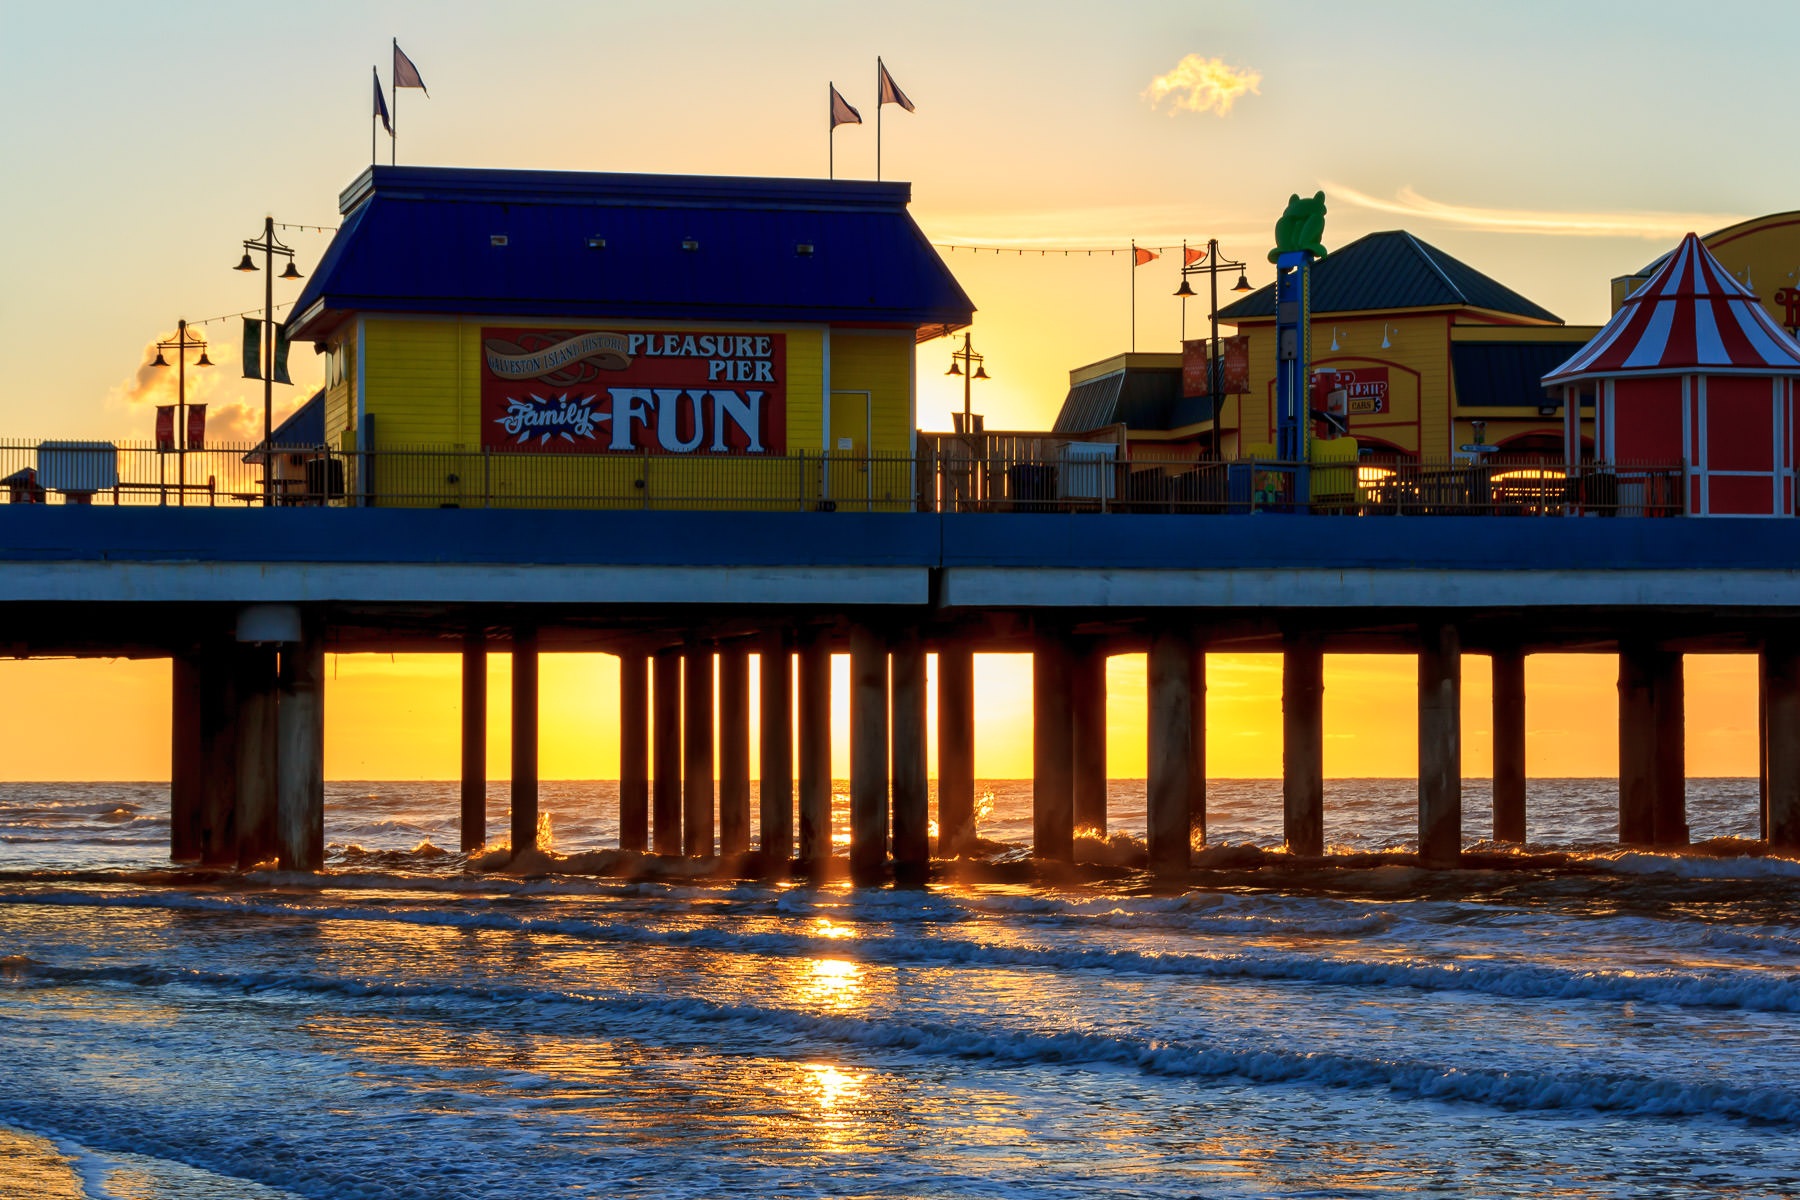 The sun rises over the Gulf of Mexico behind Galveston, Texas' Pleasure Pier.